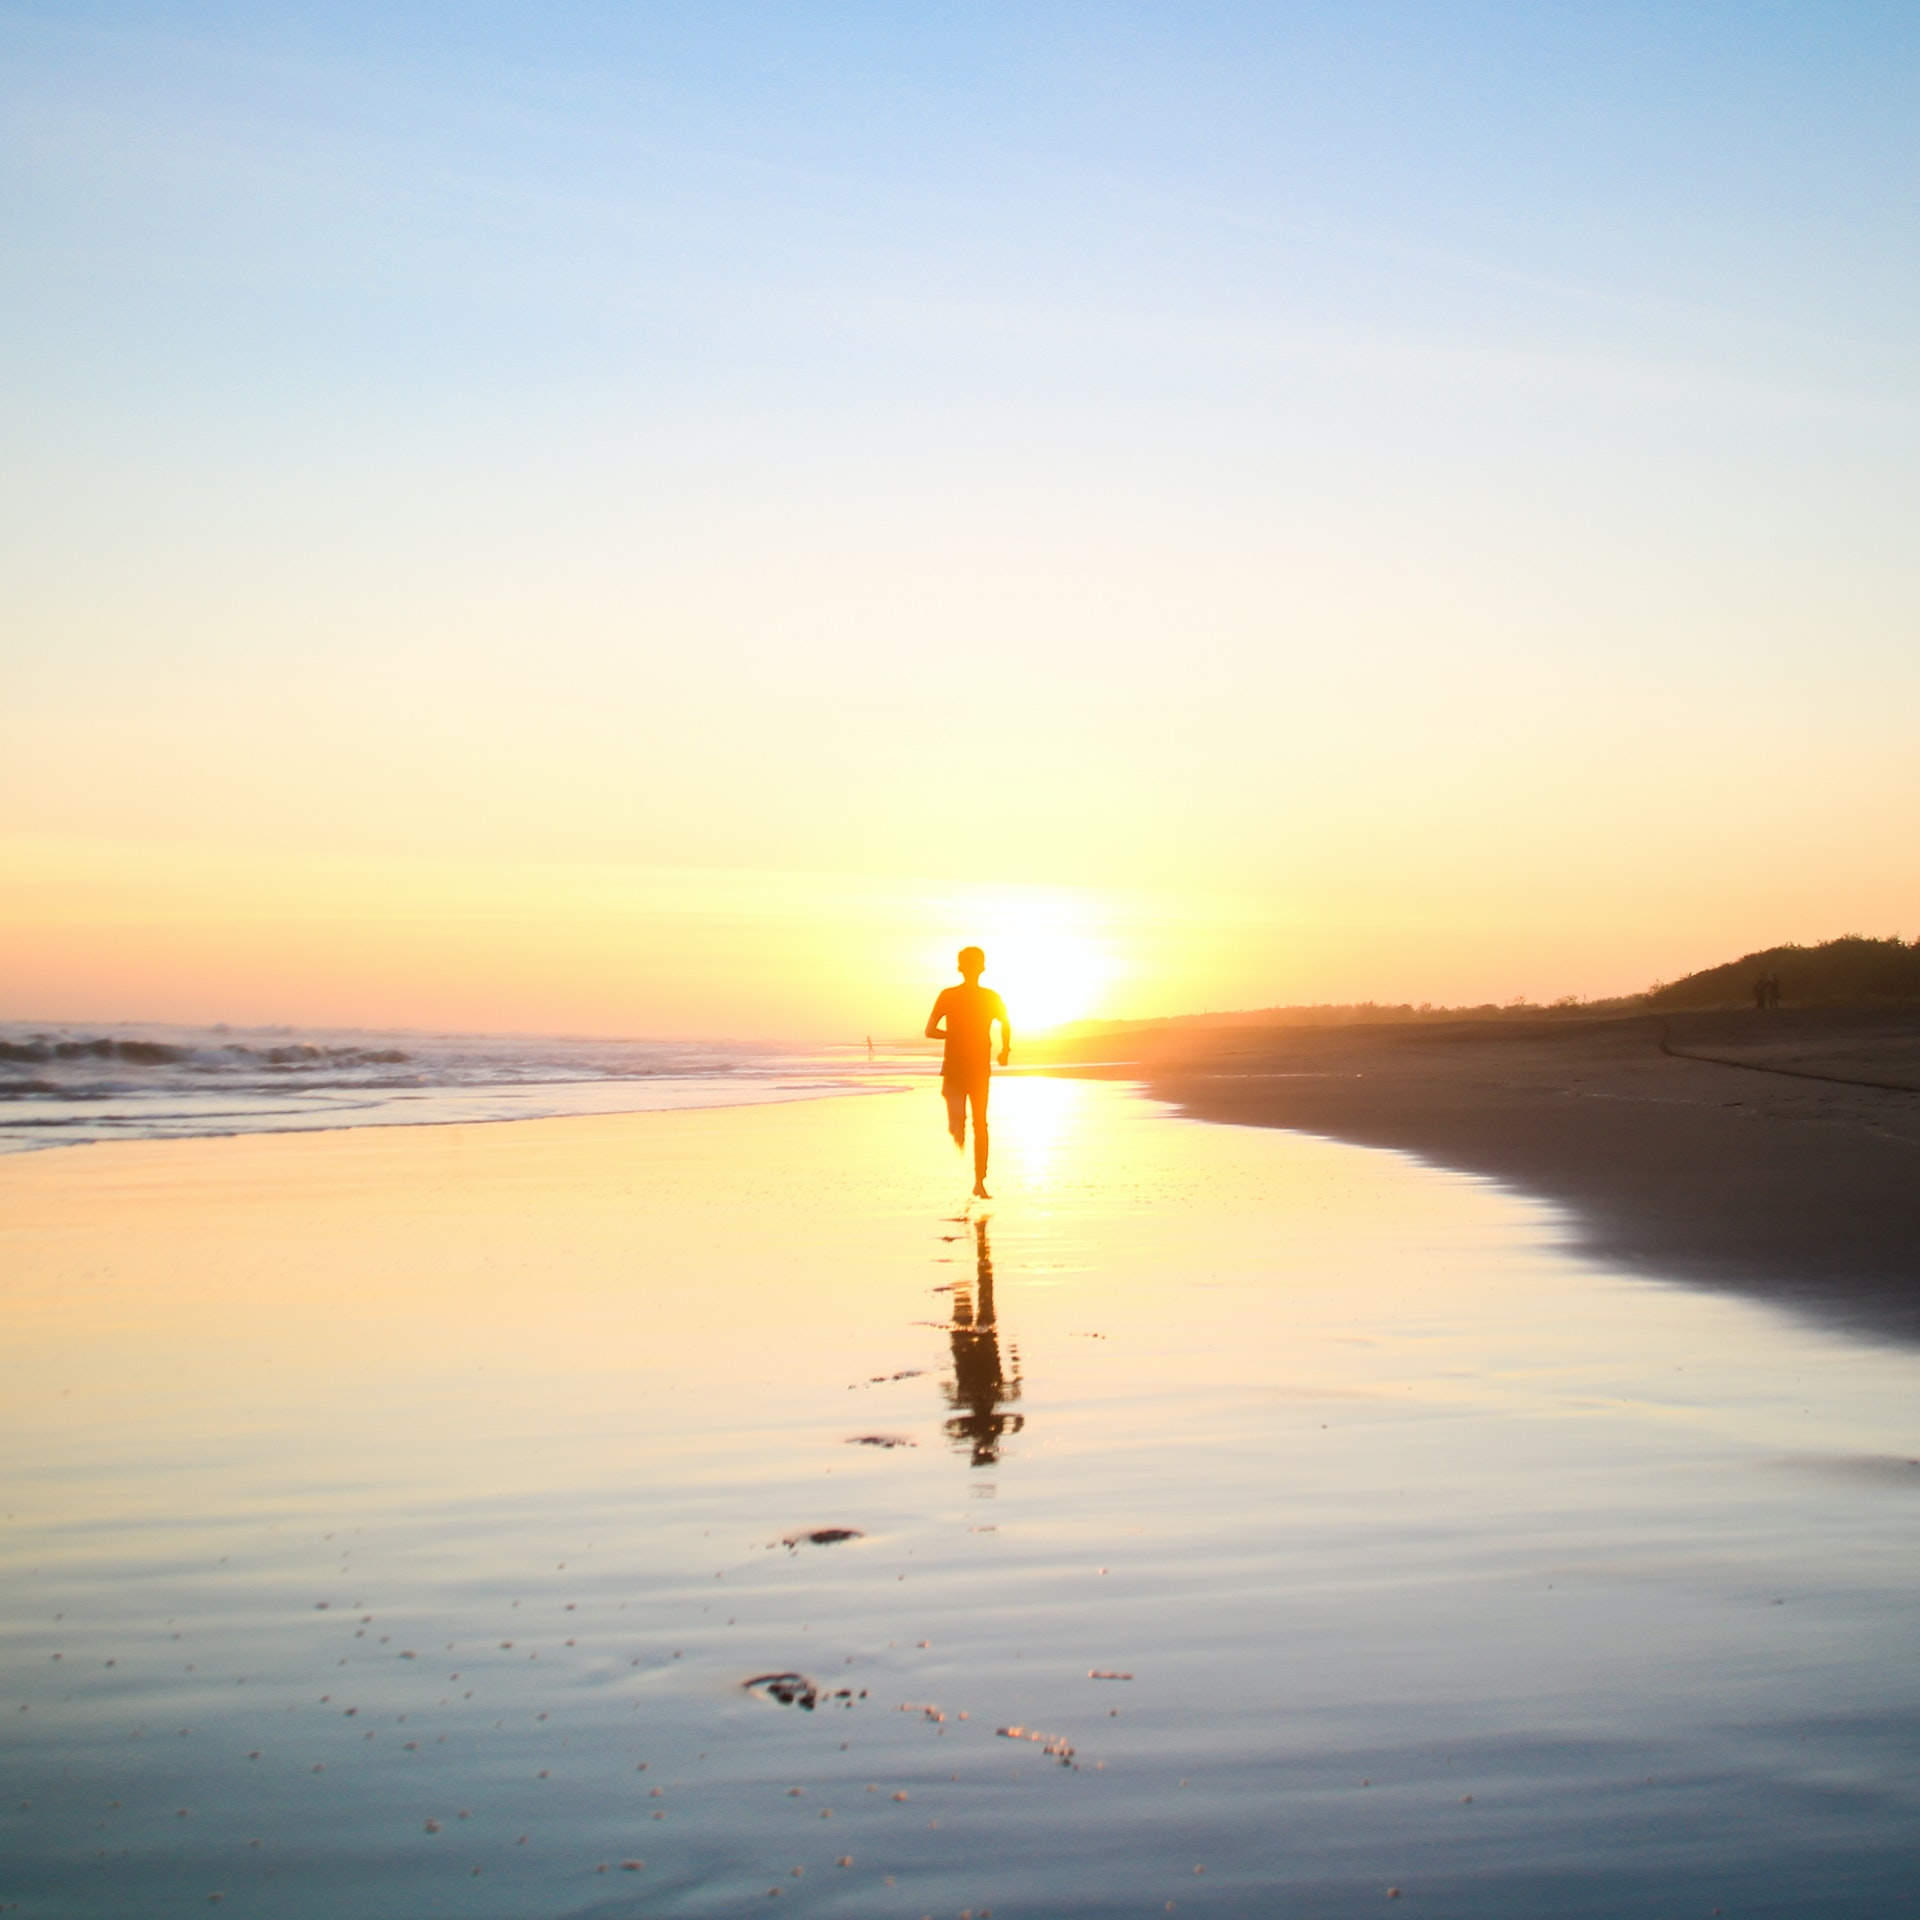 silhouette-of-boy-running-in-body-of-water-during-sunset-694587